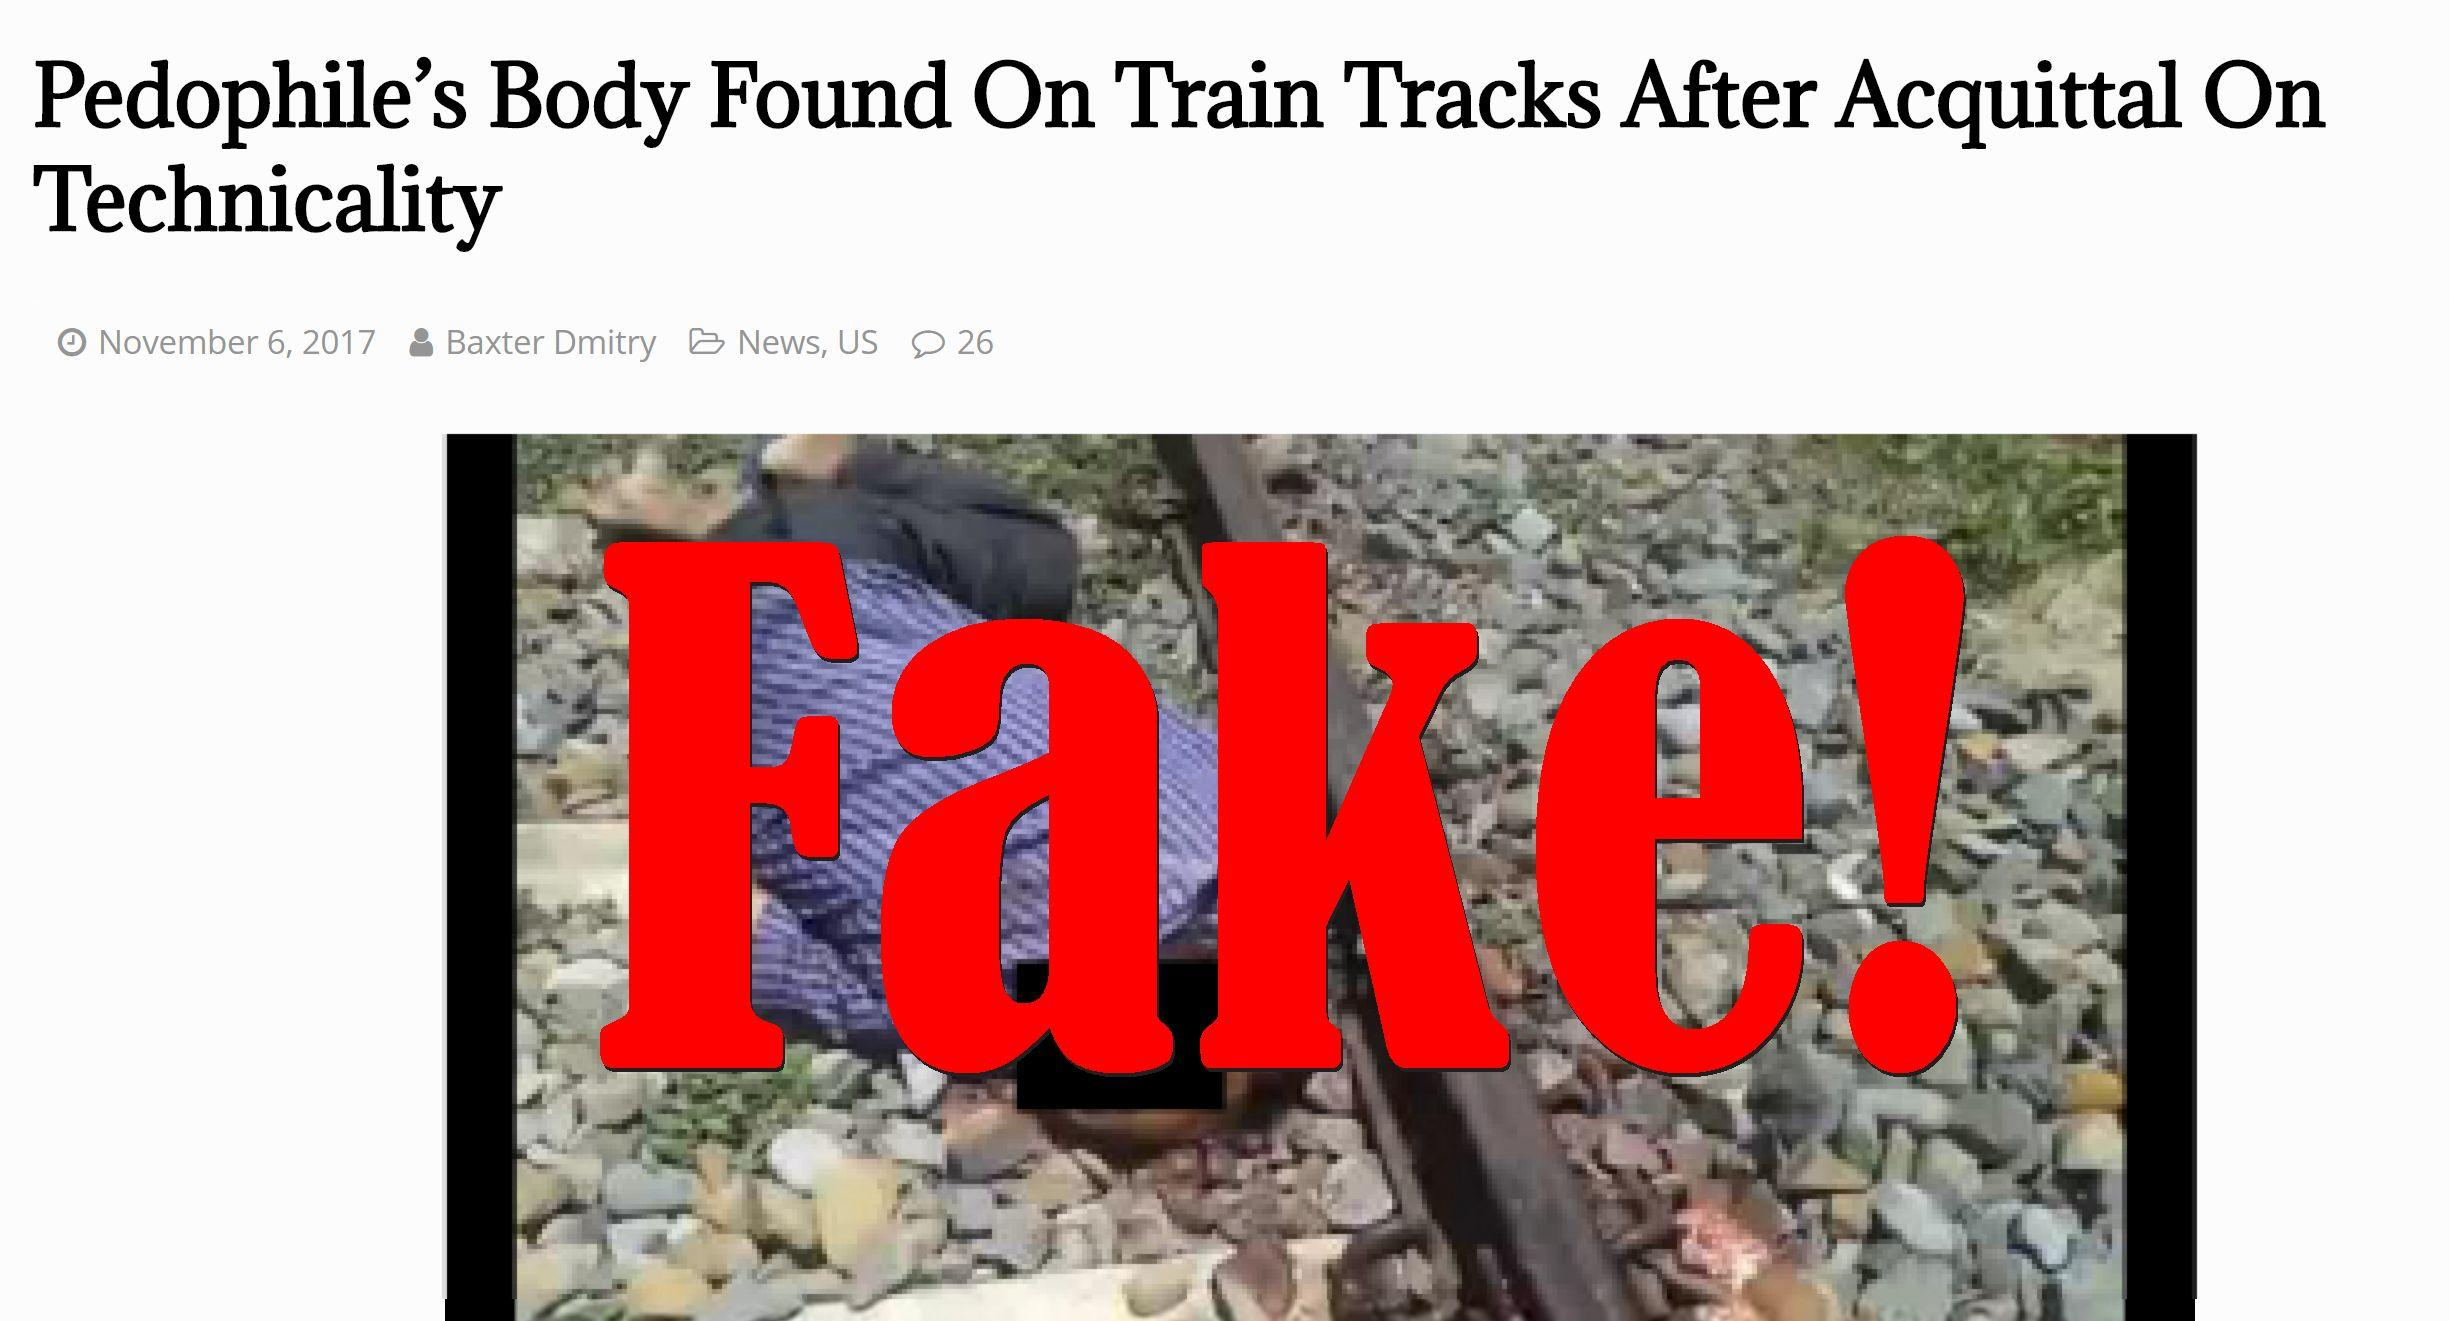 Fake News: Pedophile's Body NOT Found On Train Tracks After Acquittal On Technicality